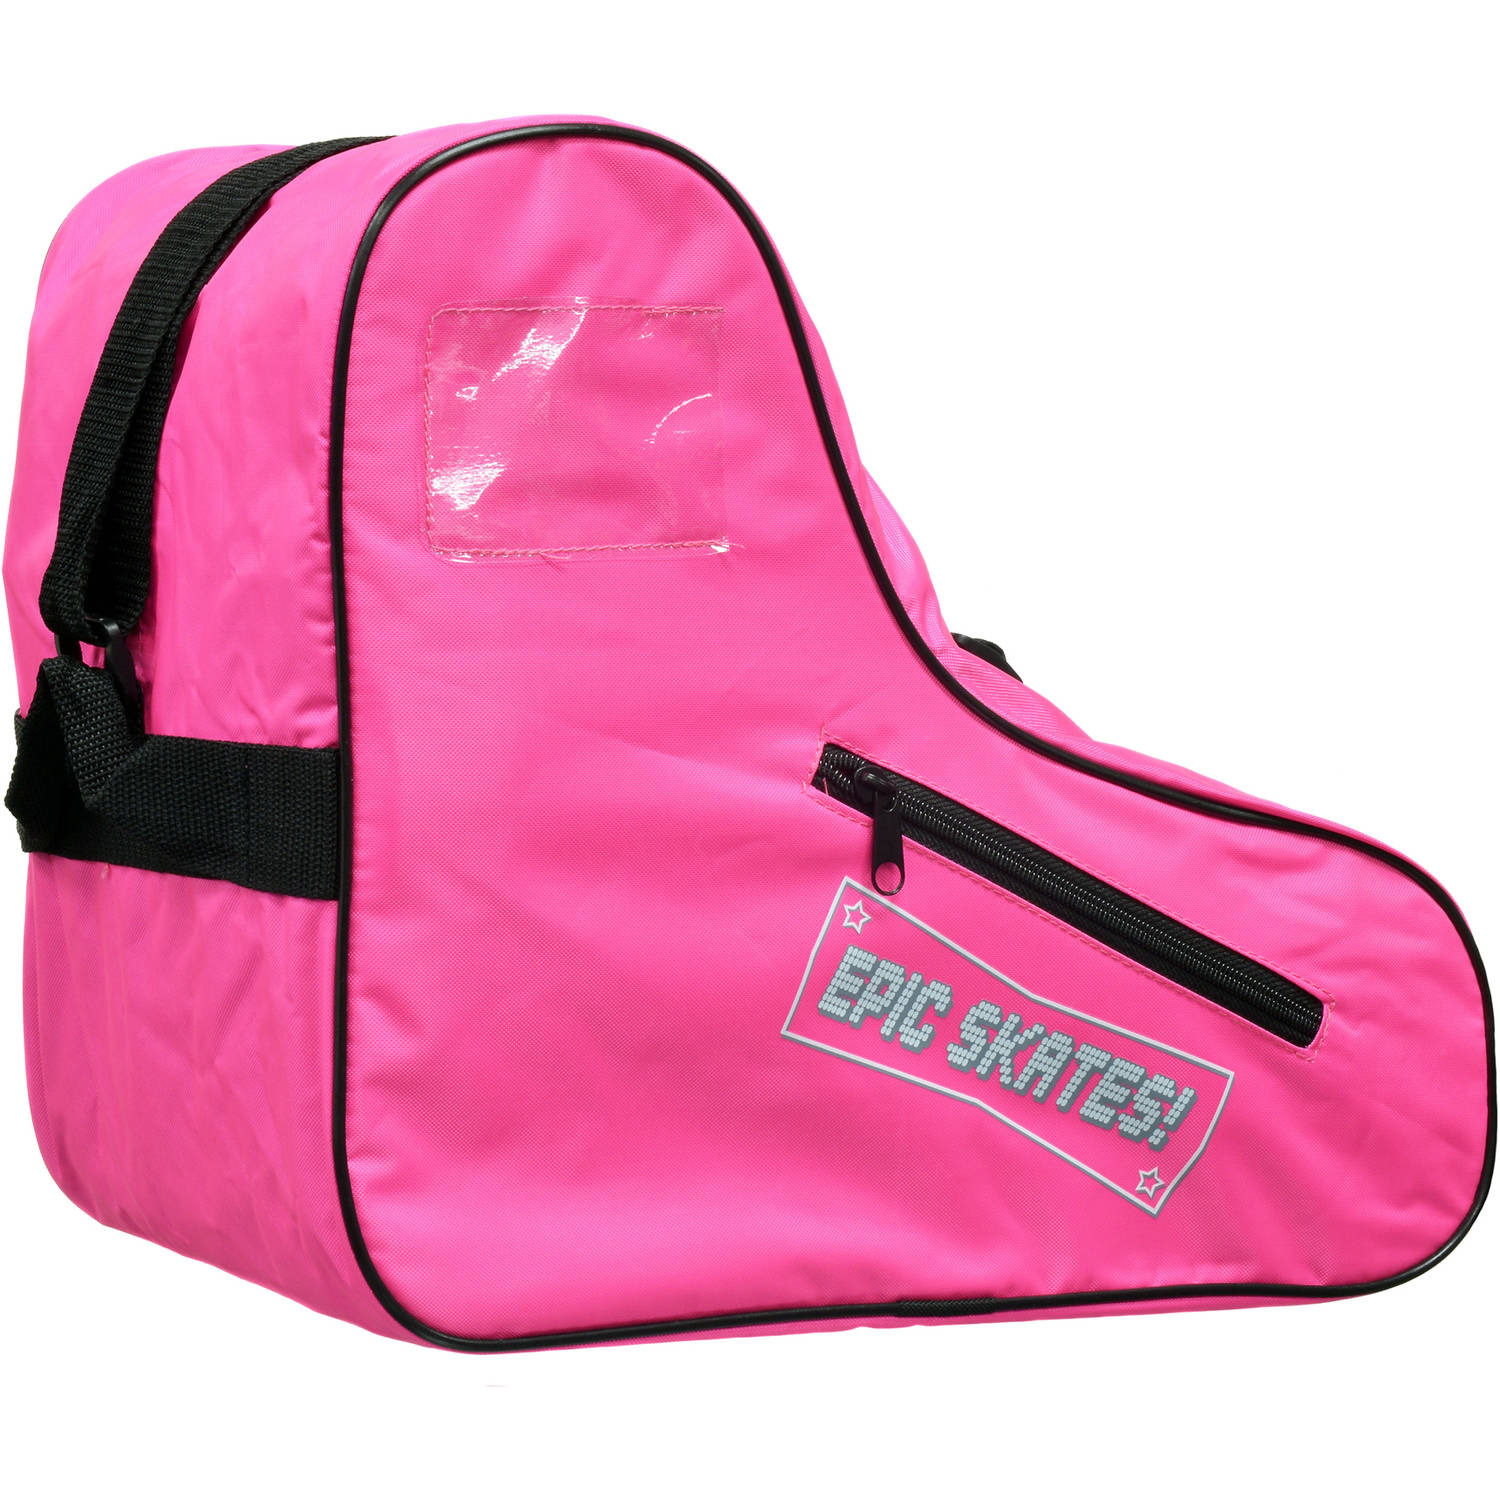 Epic Pink Roller Skate Bag by Epic Skates